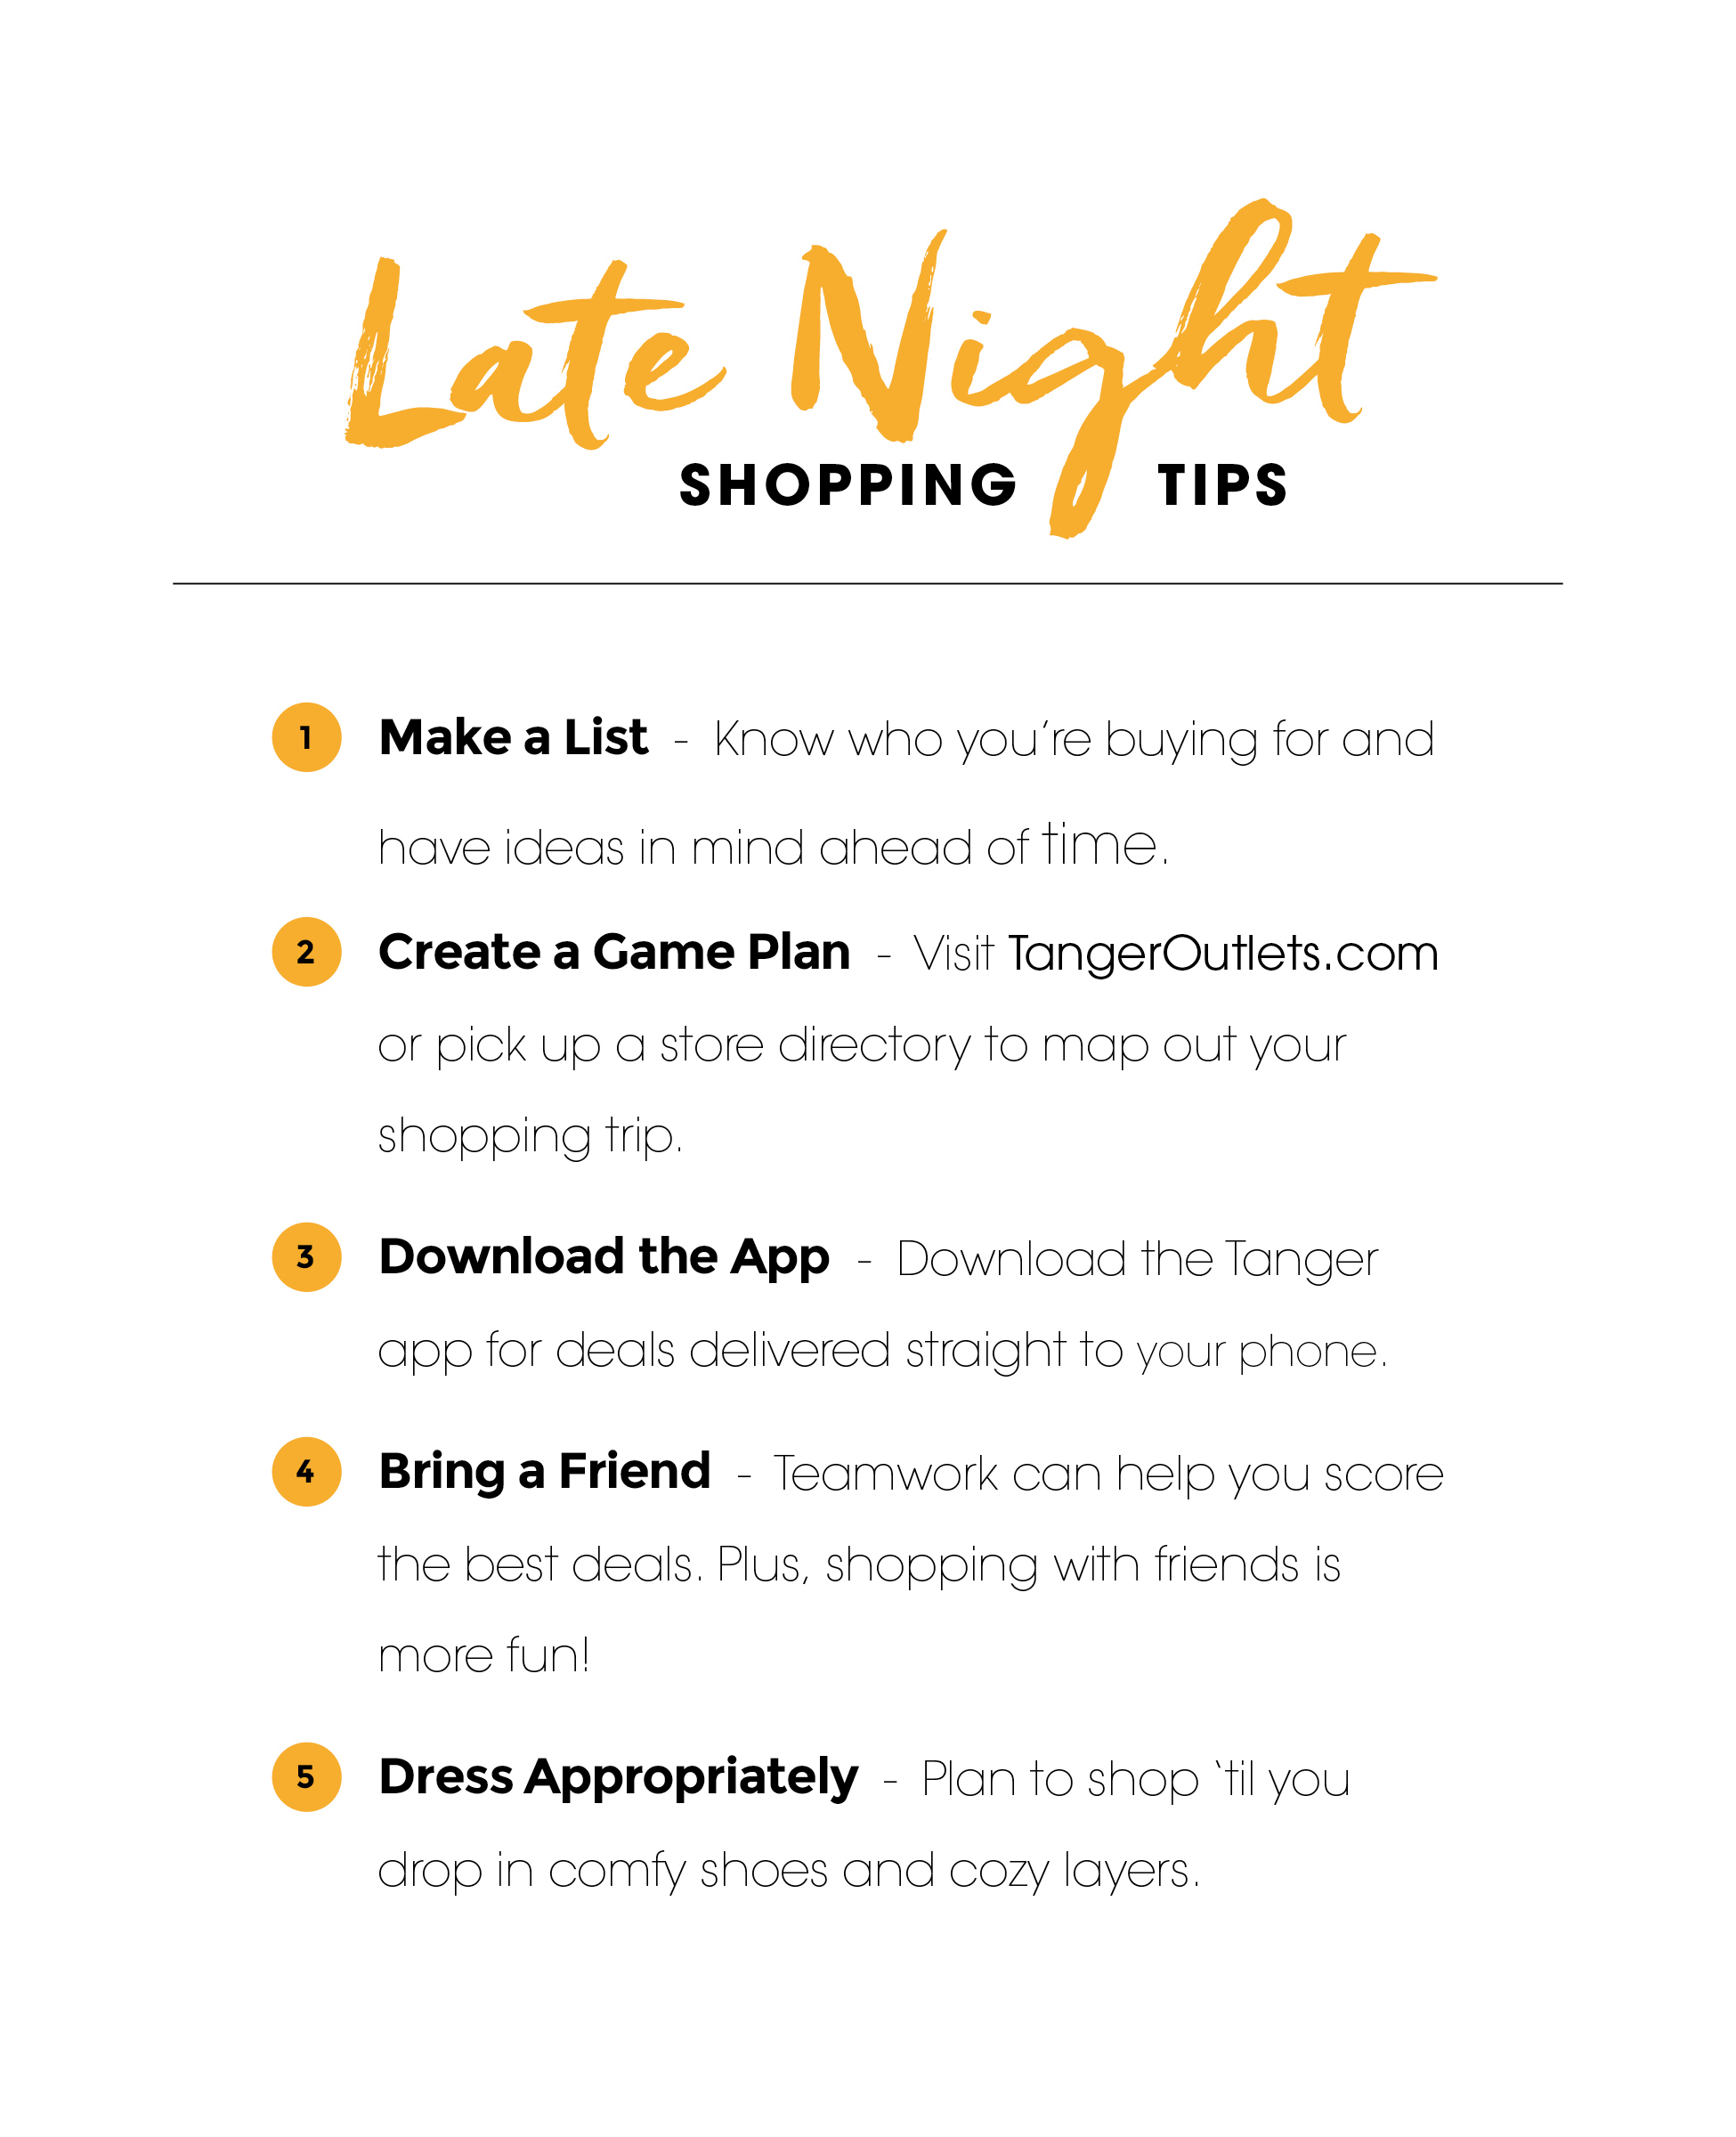 use-this-new-image_late-night-shopping-tips